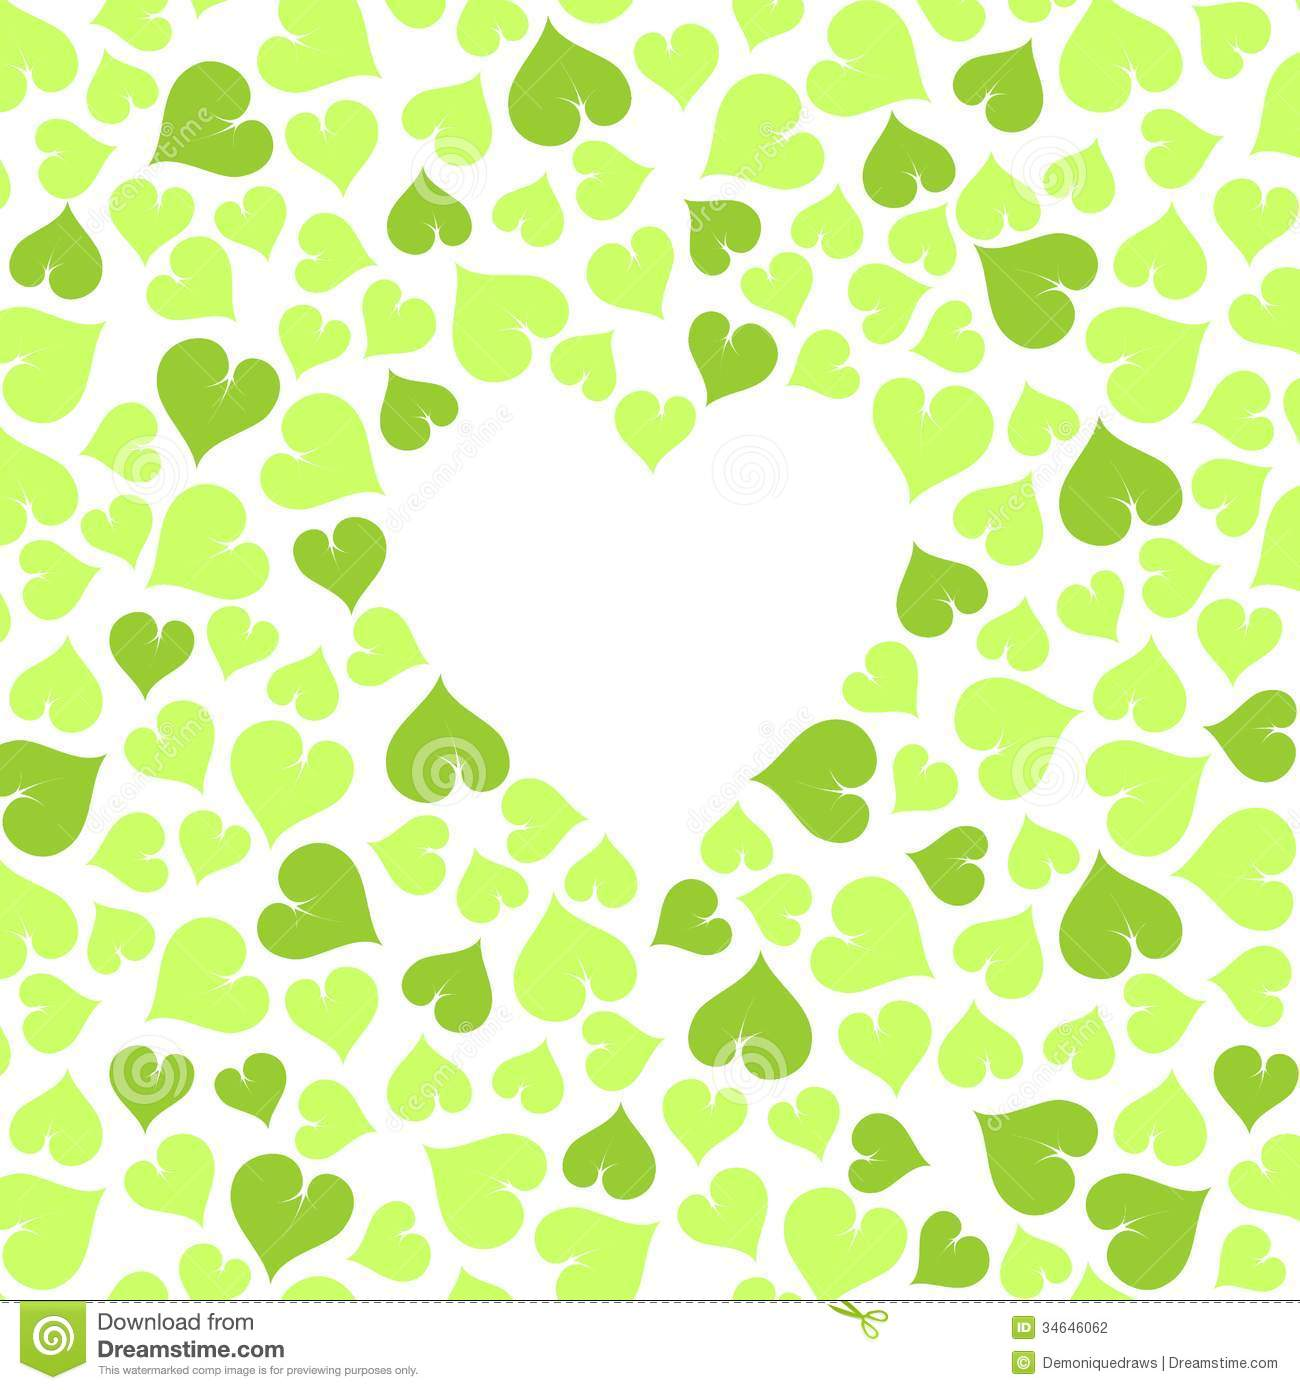 green hearts background - photo #38